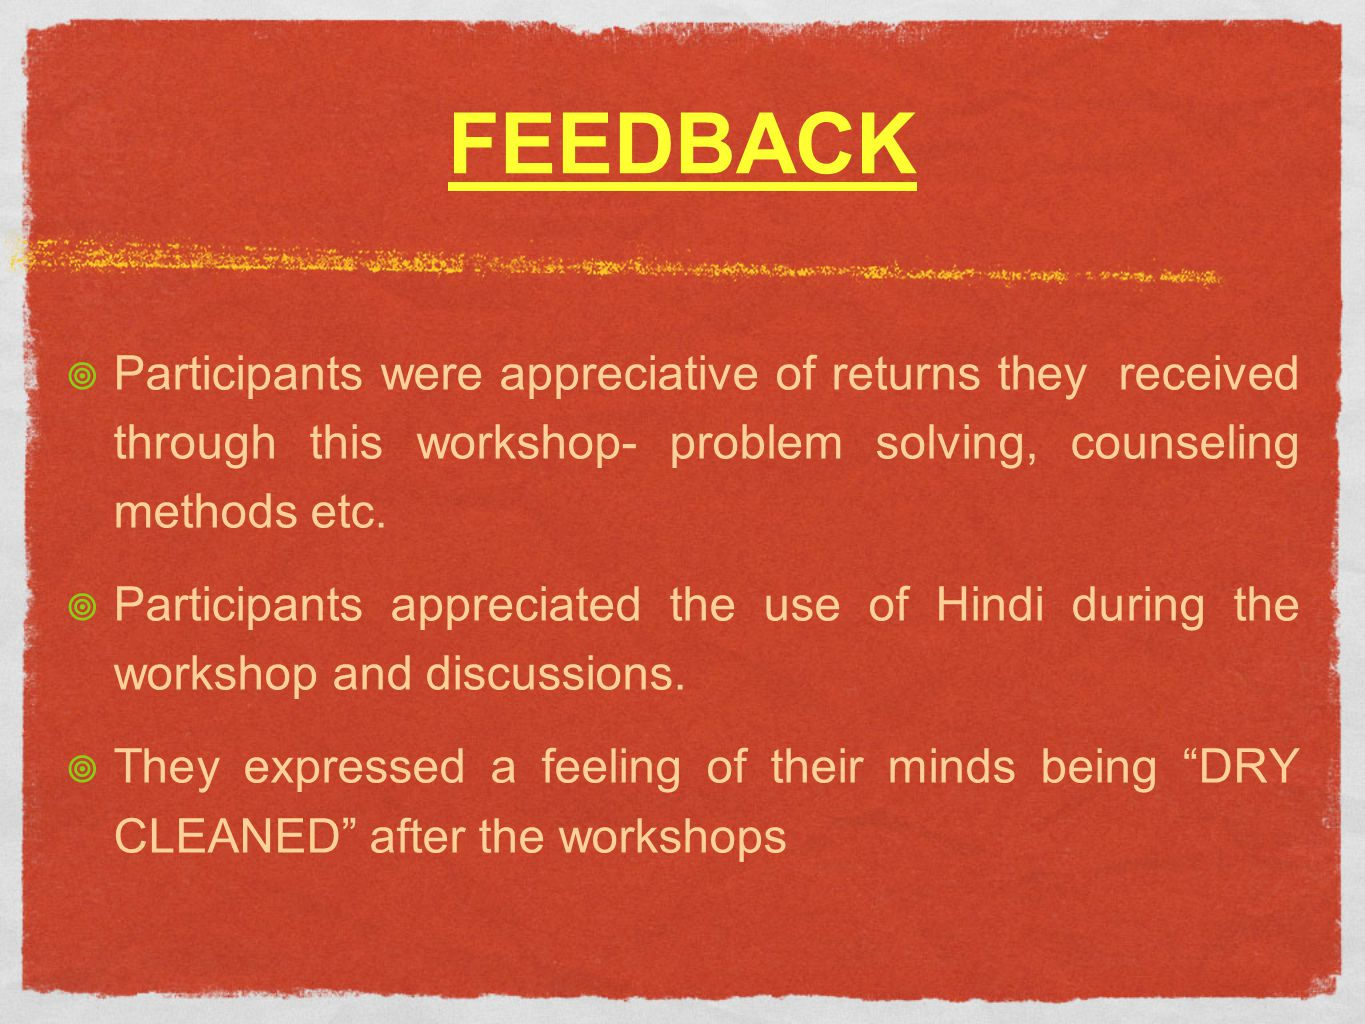 FEEDBACK Participants were appreciative of returns they received through this workshop- problem solving, counseling methods etc.